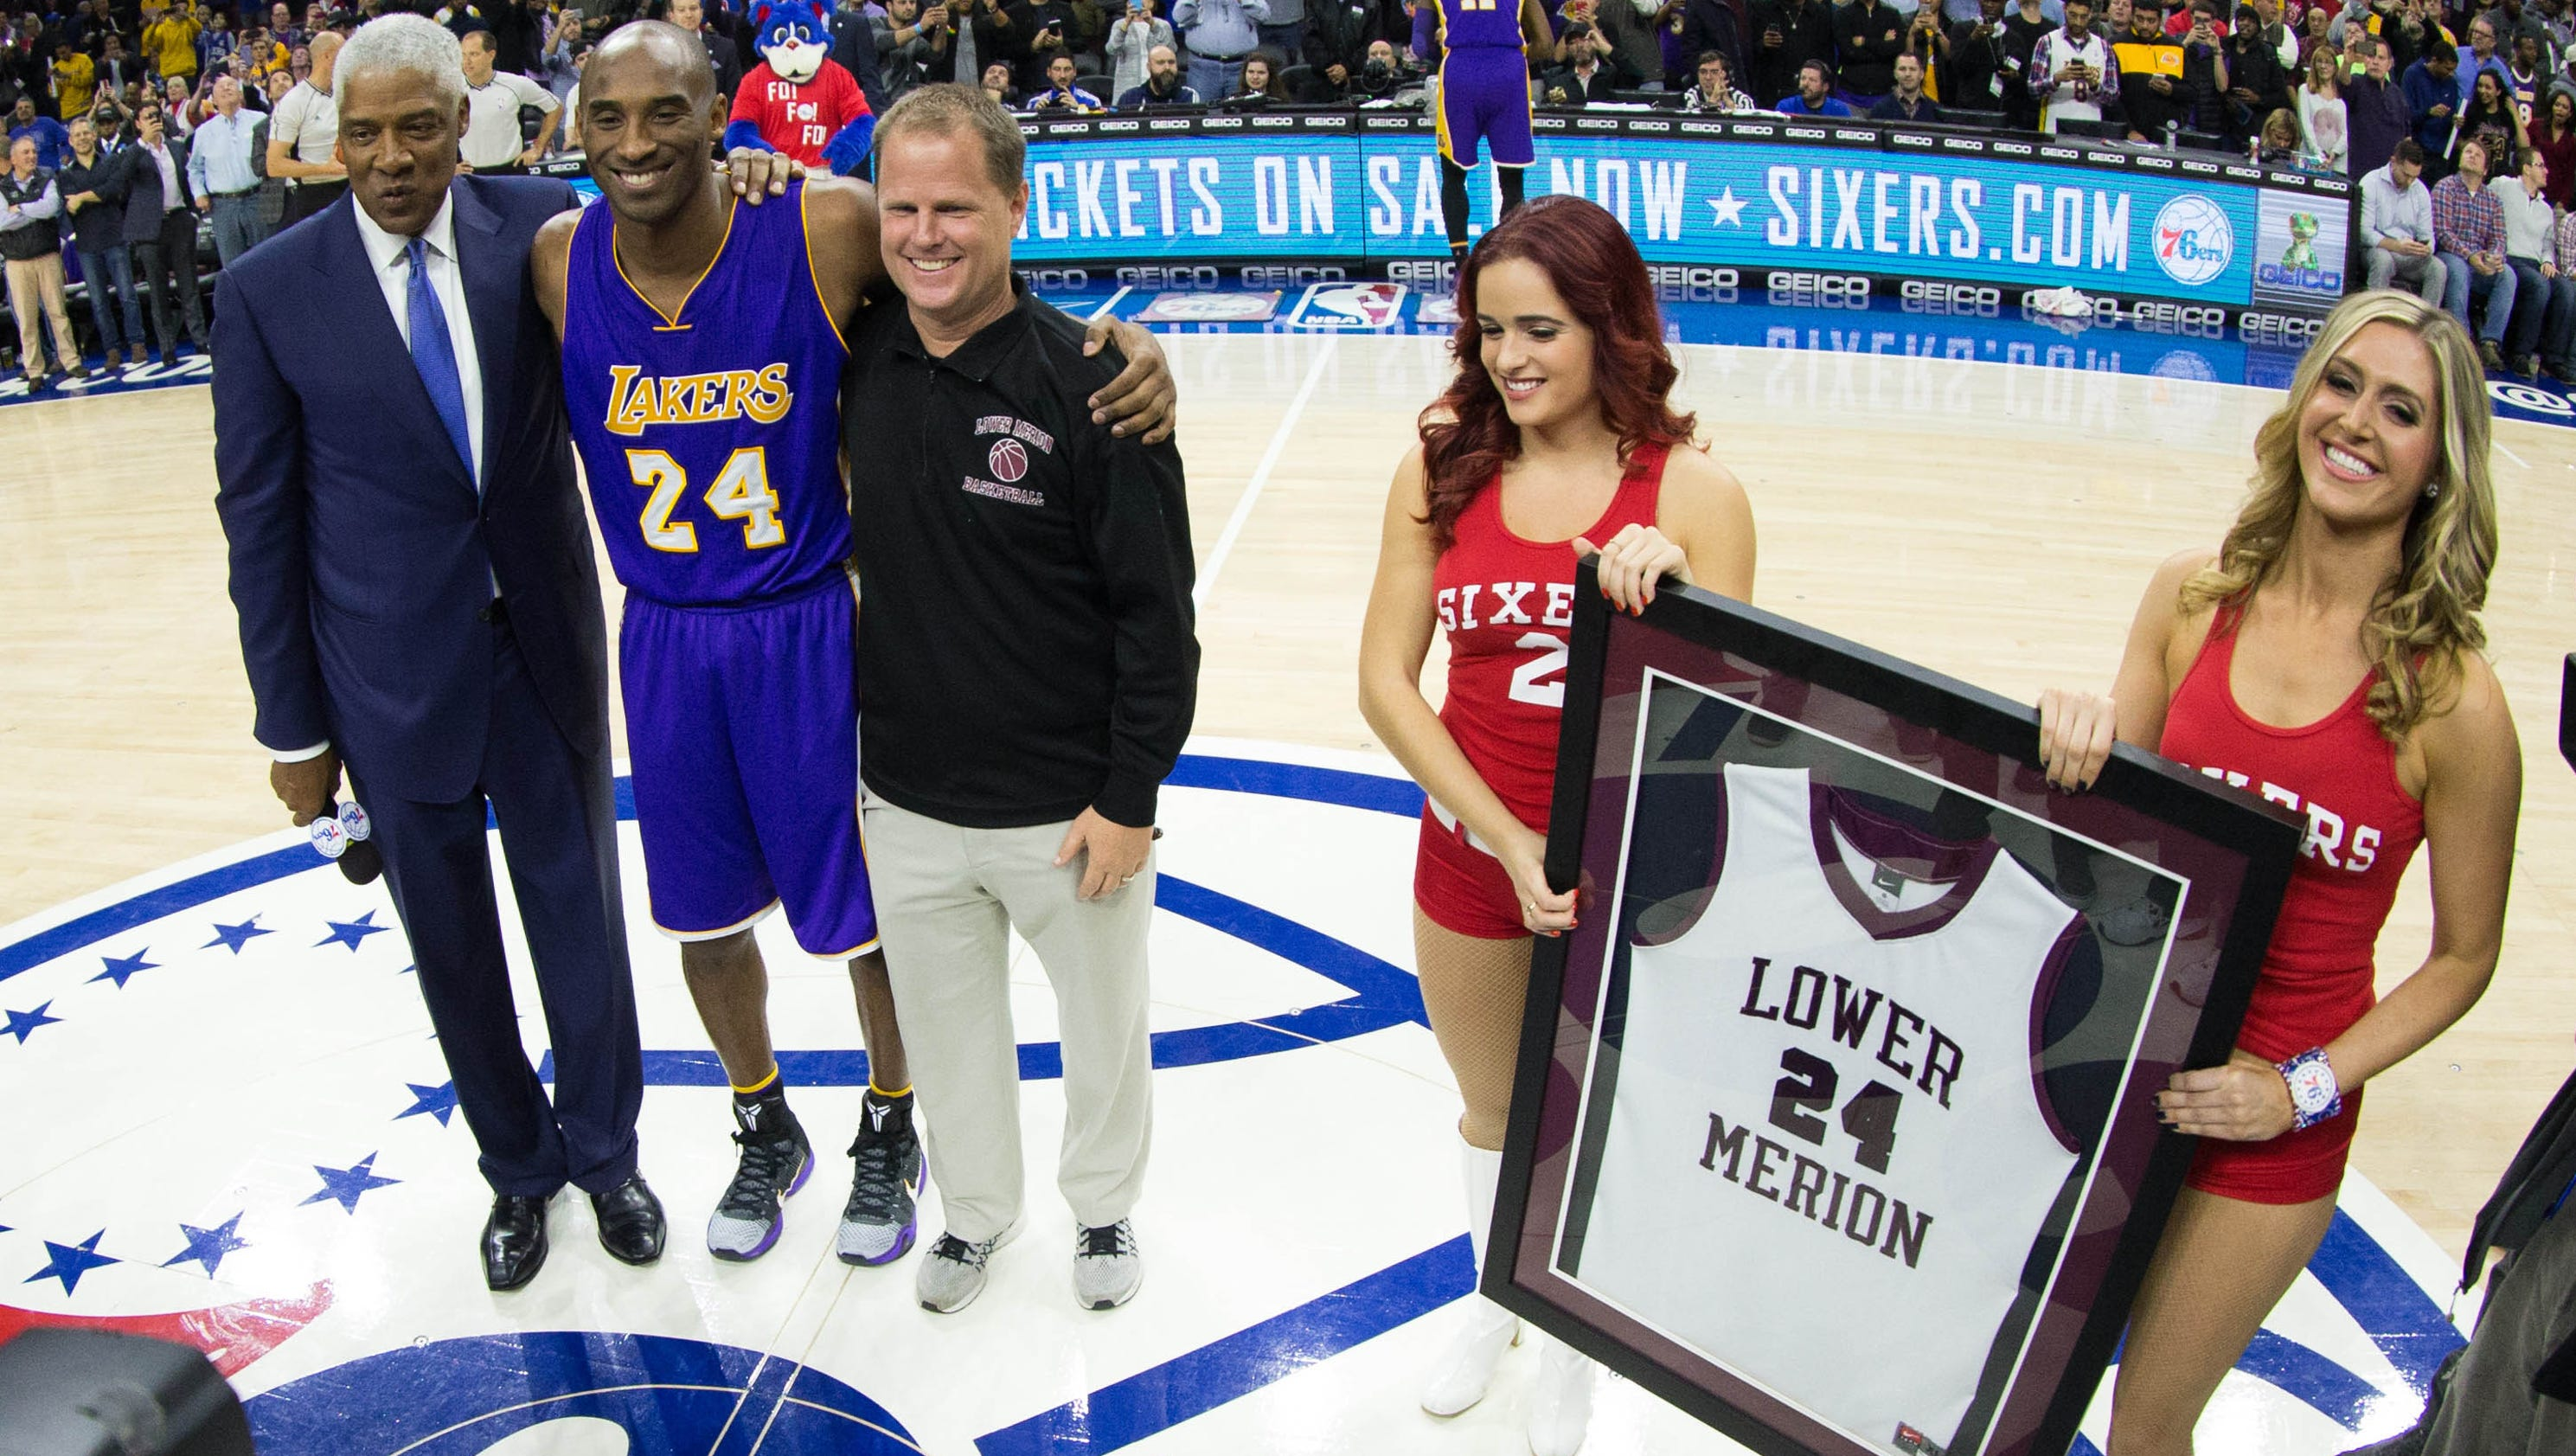 Kobe Bryant overcome with emotions in farewell to hometown